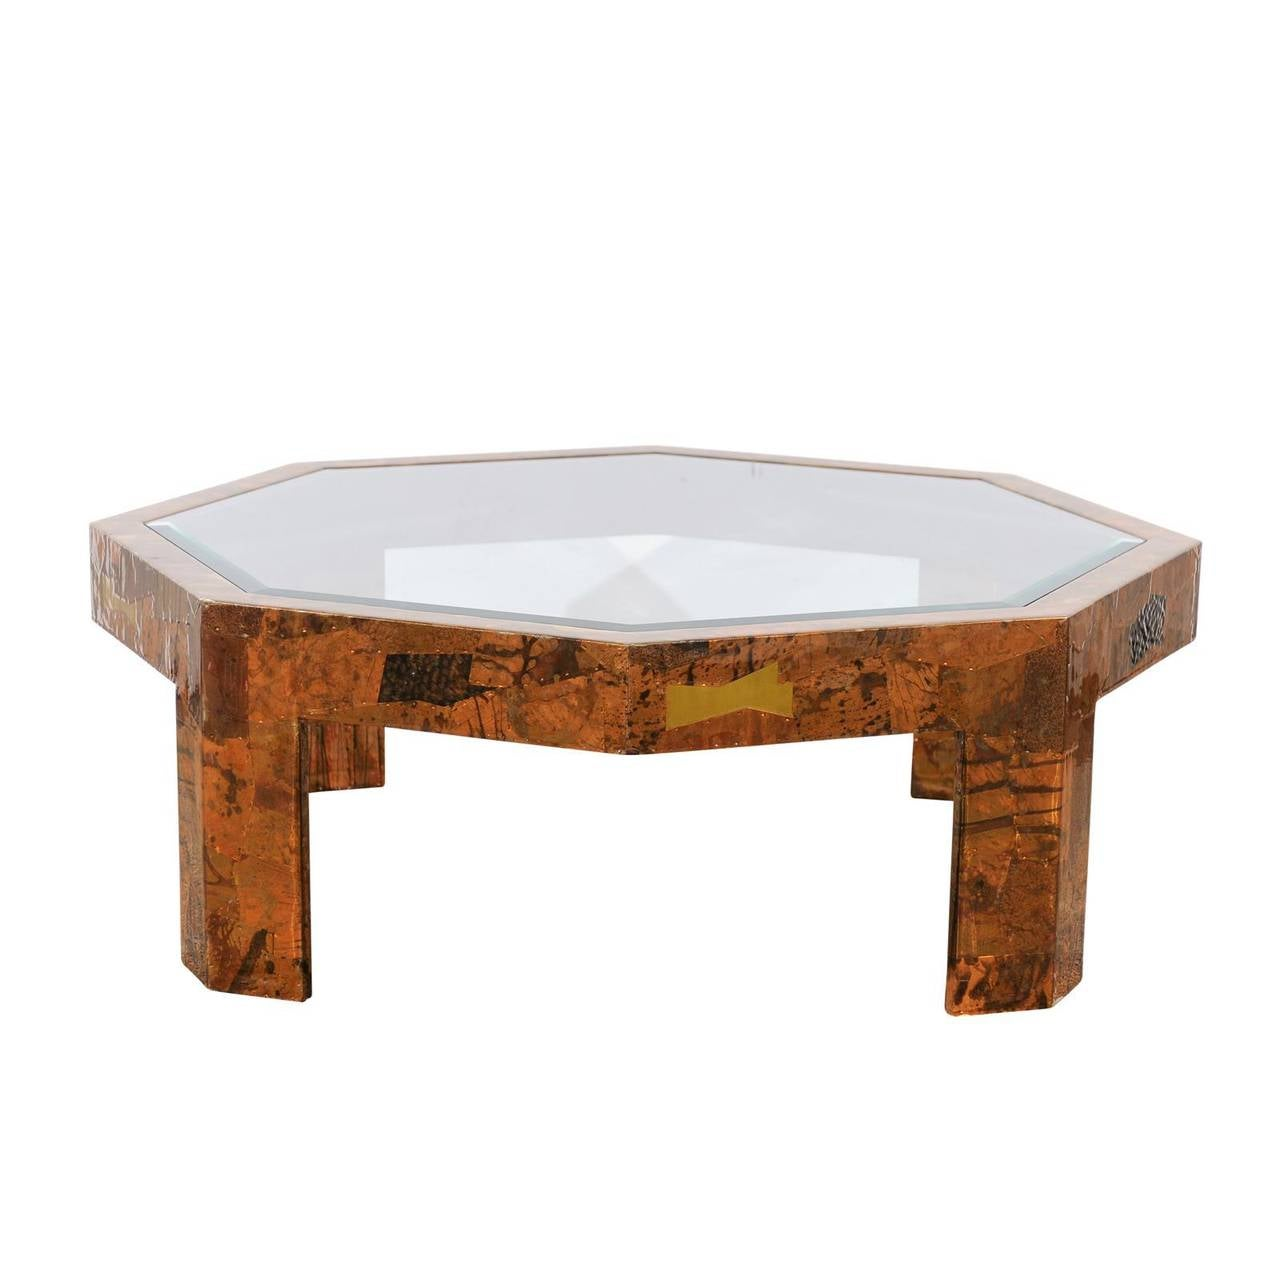 Mid-Century Modern Octagonal Coffee Table